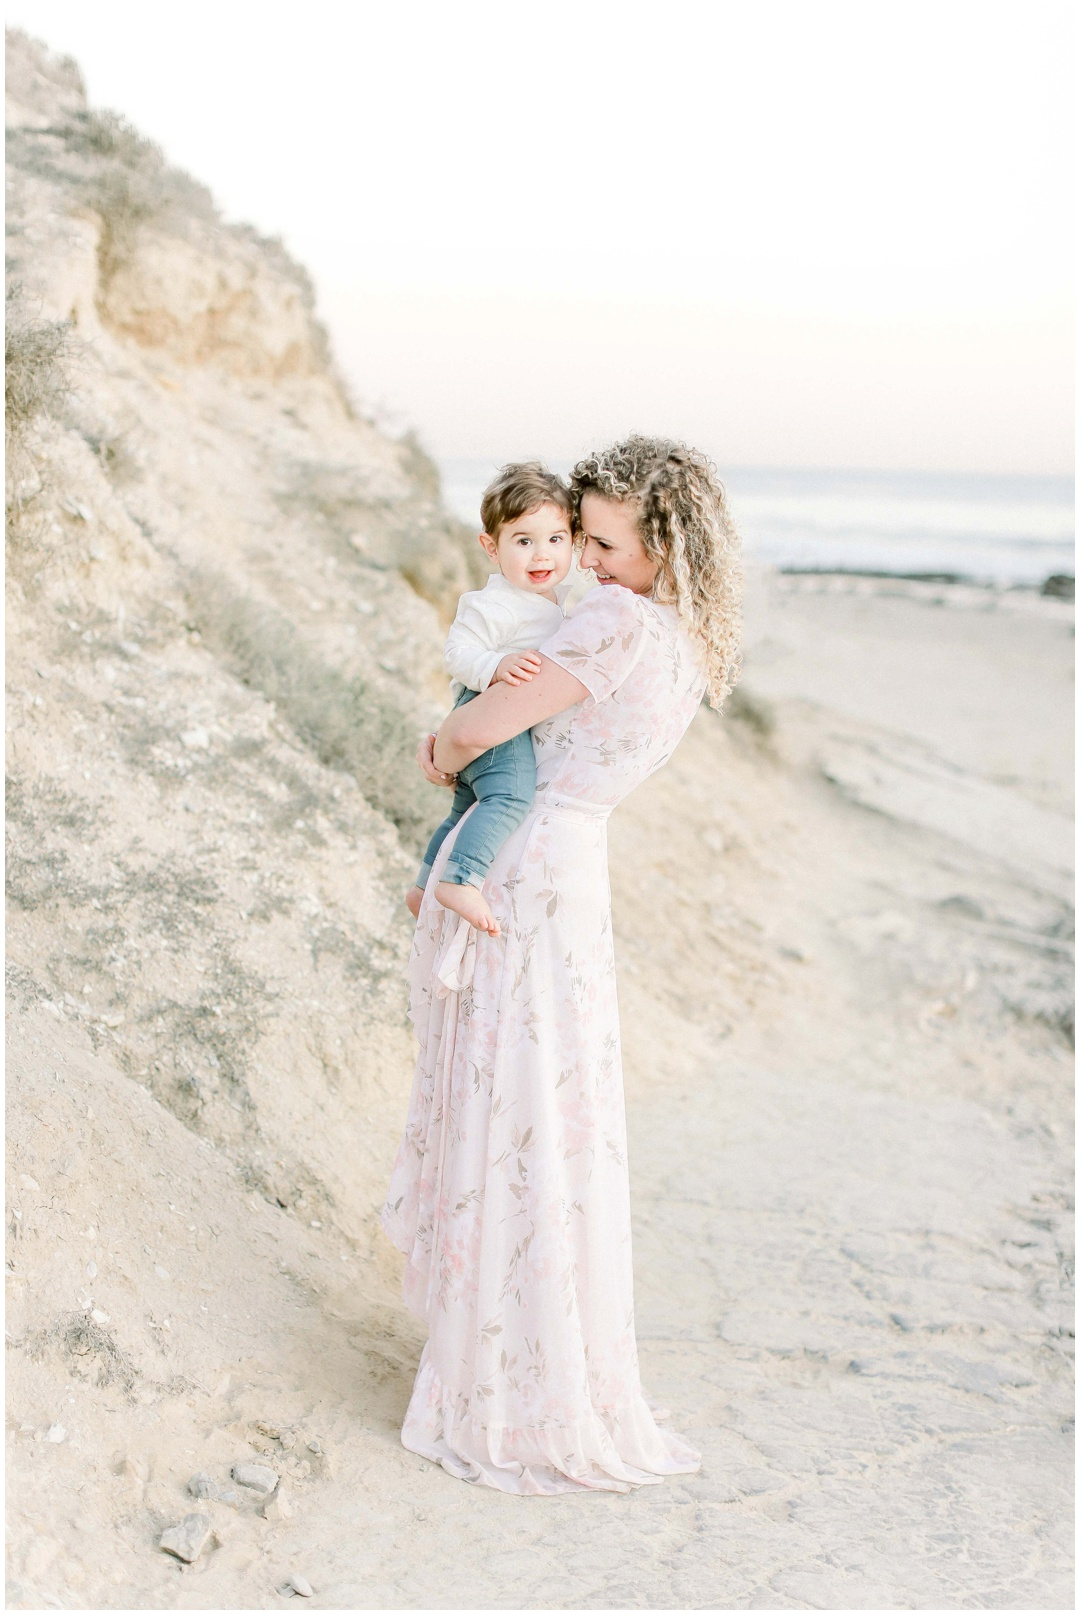 Newport_Beach_Family_Photographer_Newport_Beach_Newborn_Photographer_Orange_County_Family_Photographer_Cori_Kleckner_Photography_Huntington_Beach_San_Clemente_Family_Session_Photography__2443.jpg